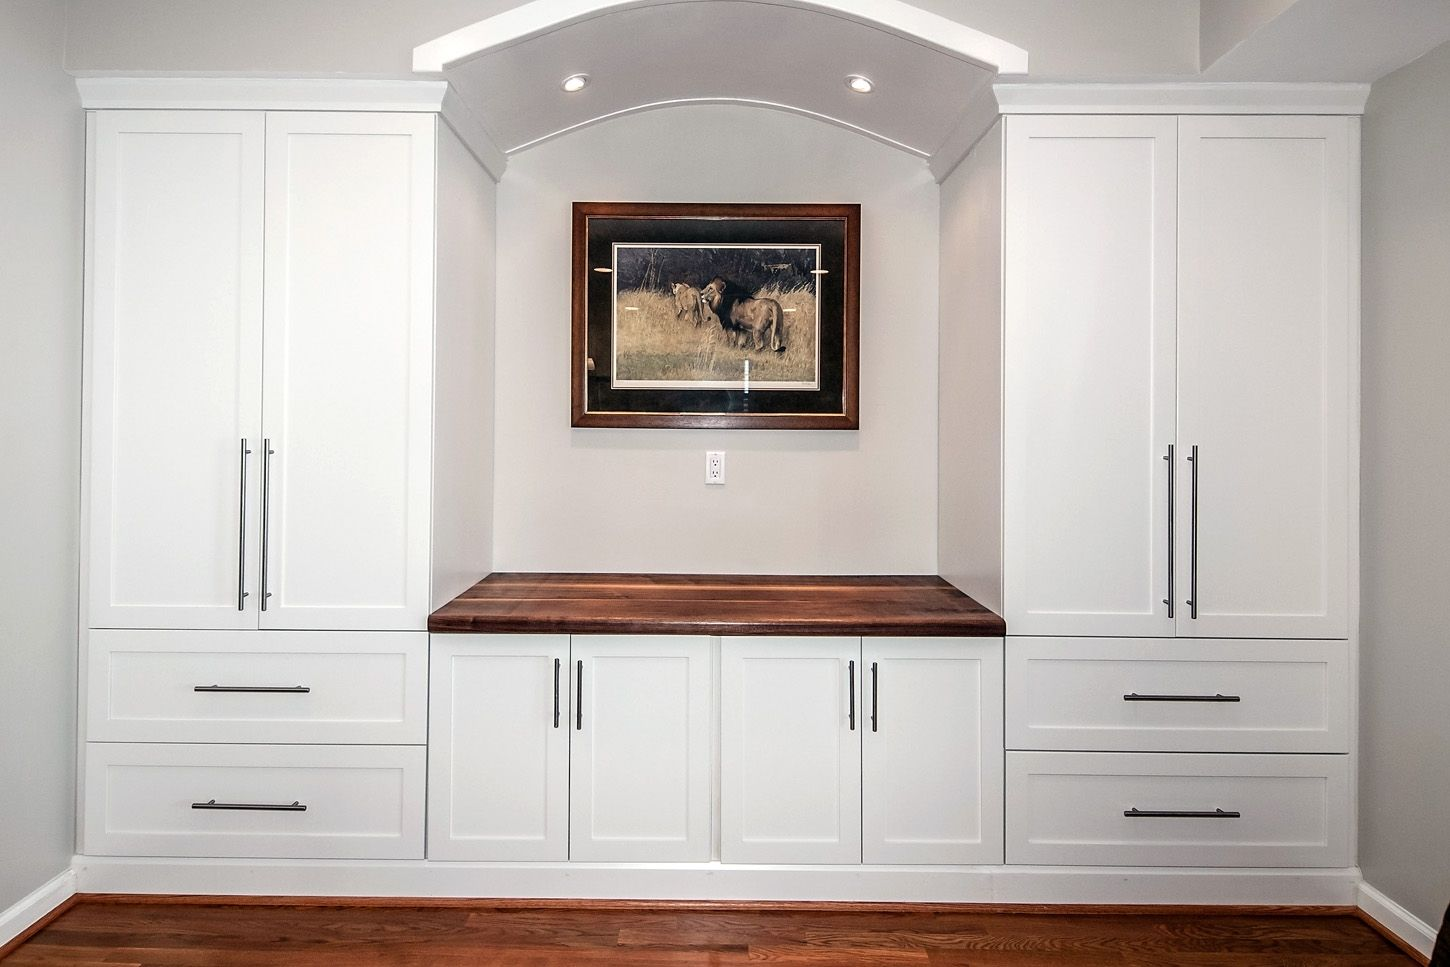 Built in bathroom wall storage - Built In Wall Storage Built In Counter Top Amp Wall Unit